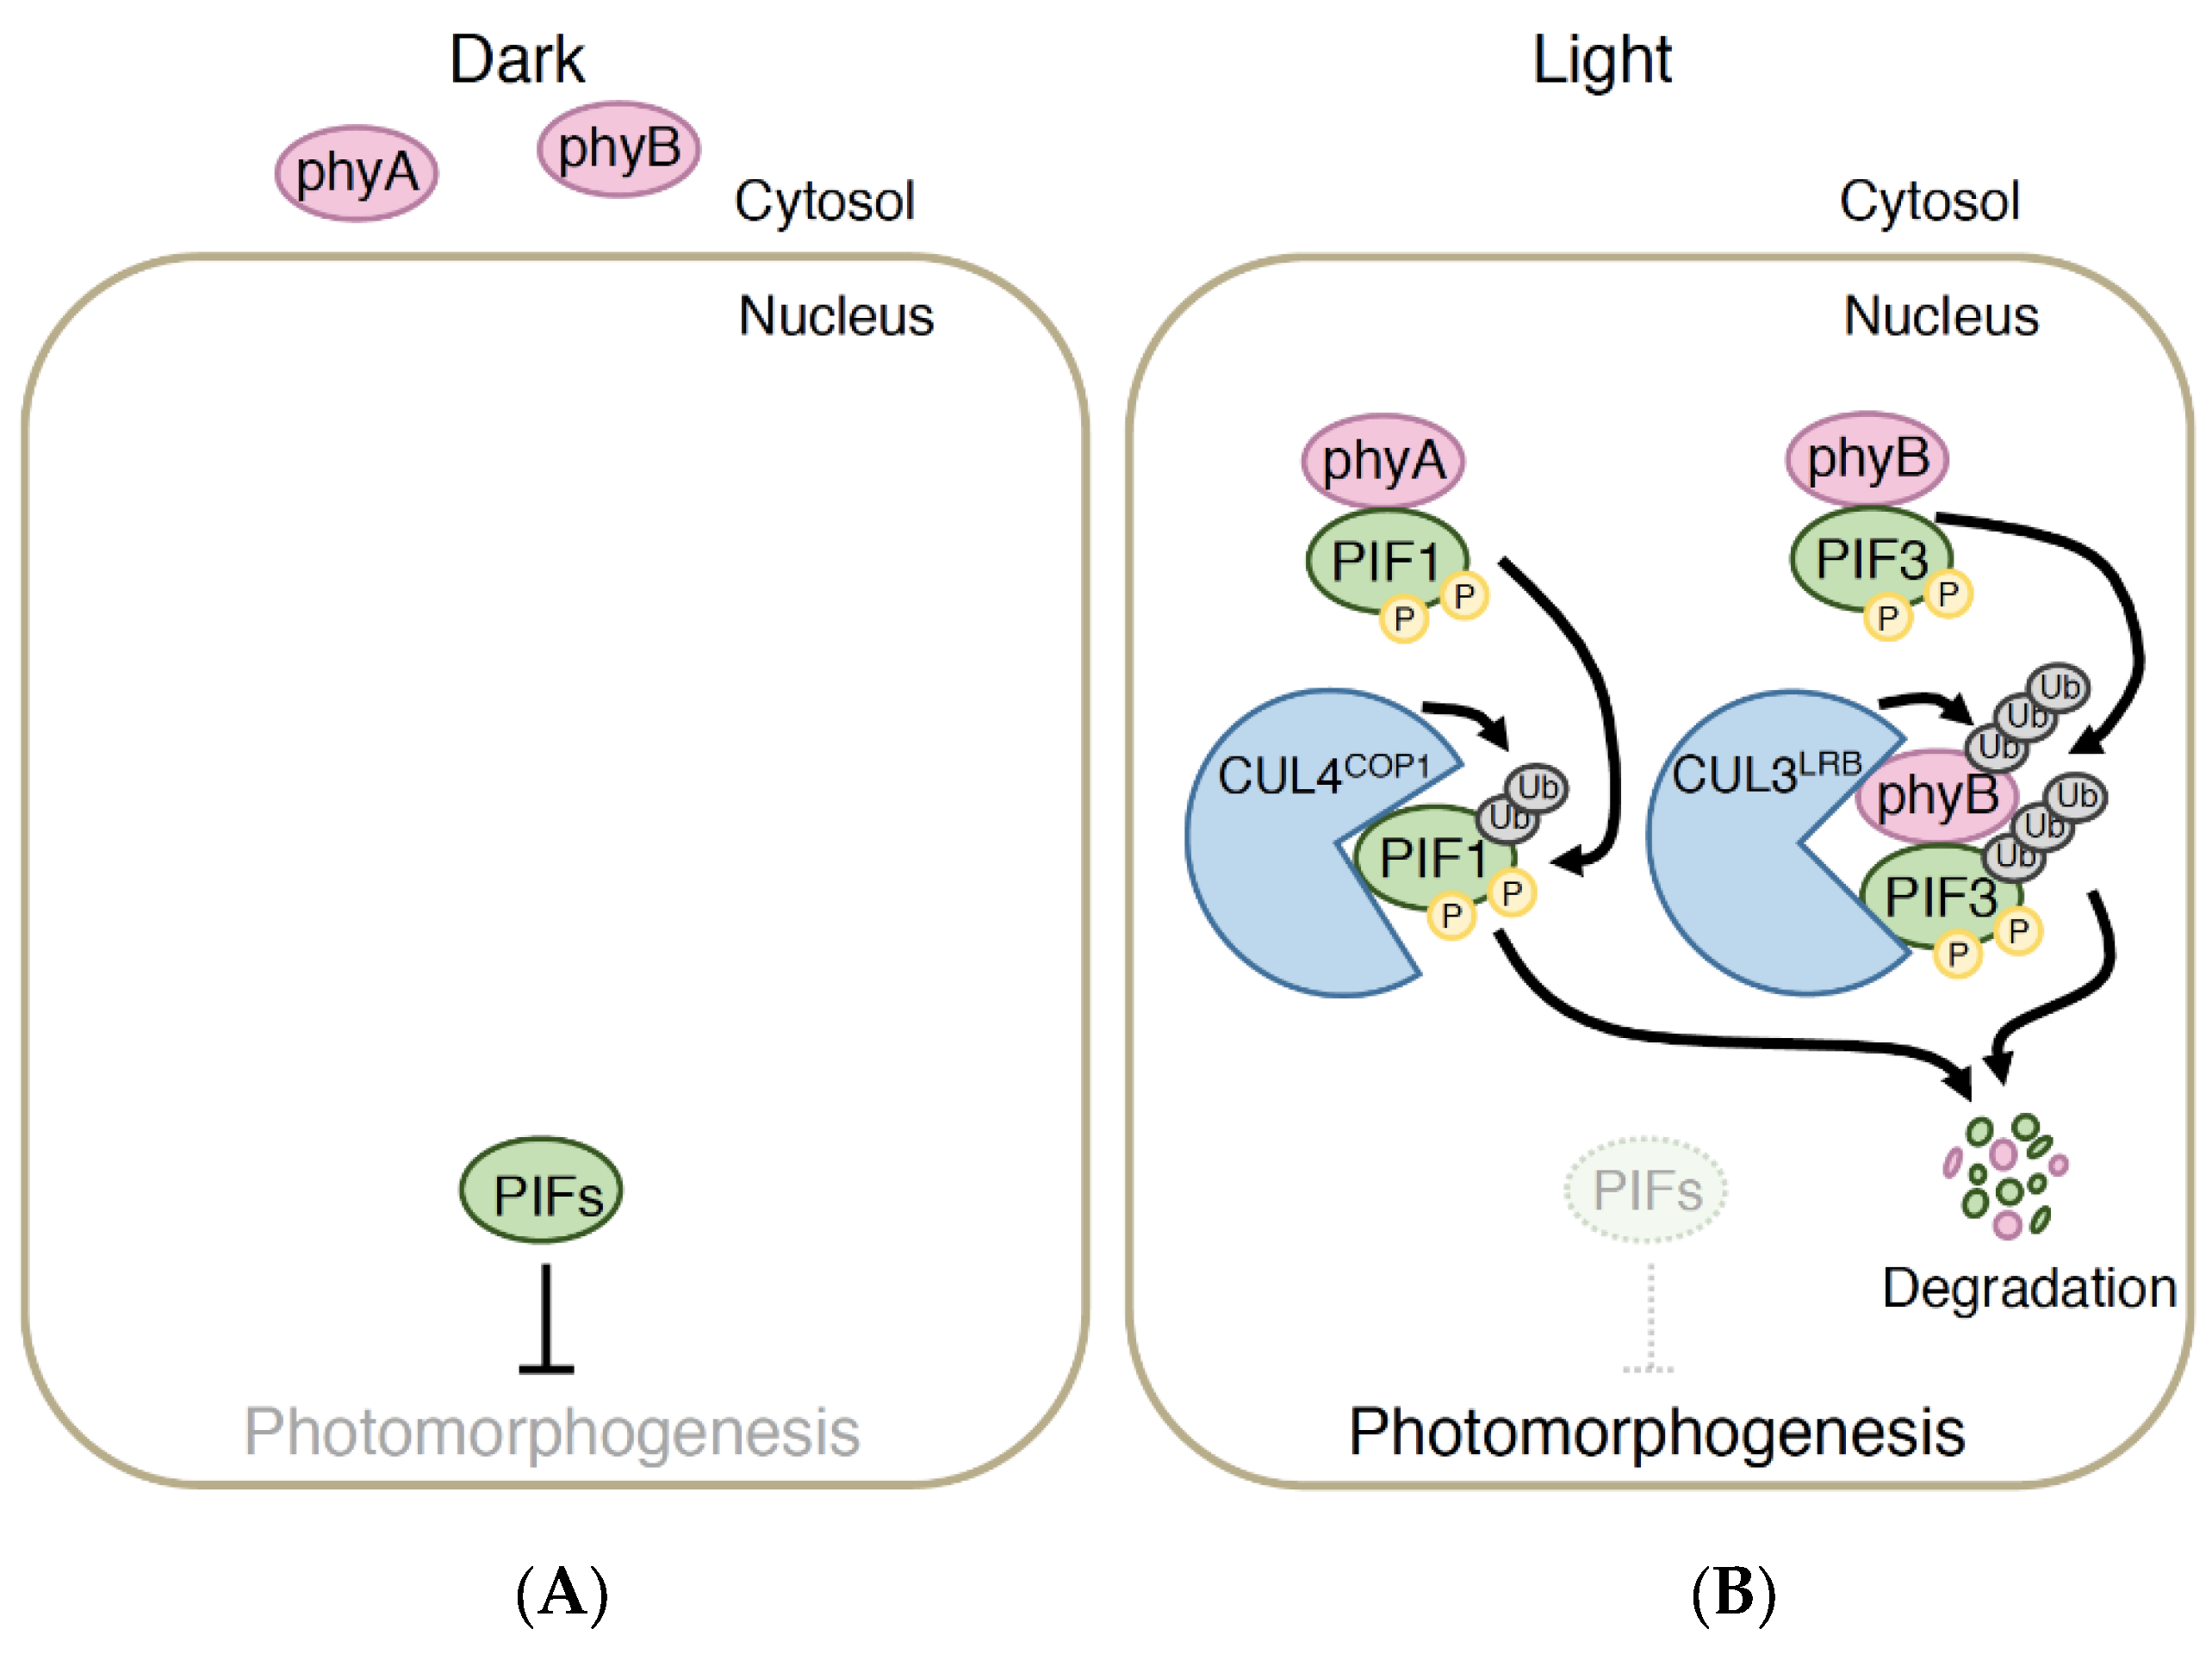 agronomy full text coordination of cryptochrome and agronomy full text coordination of cryptochrome and phytochrome signals in the regulation of plant light responses html